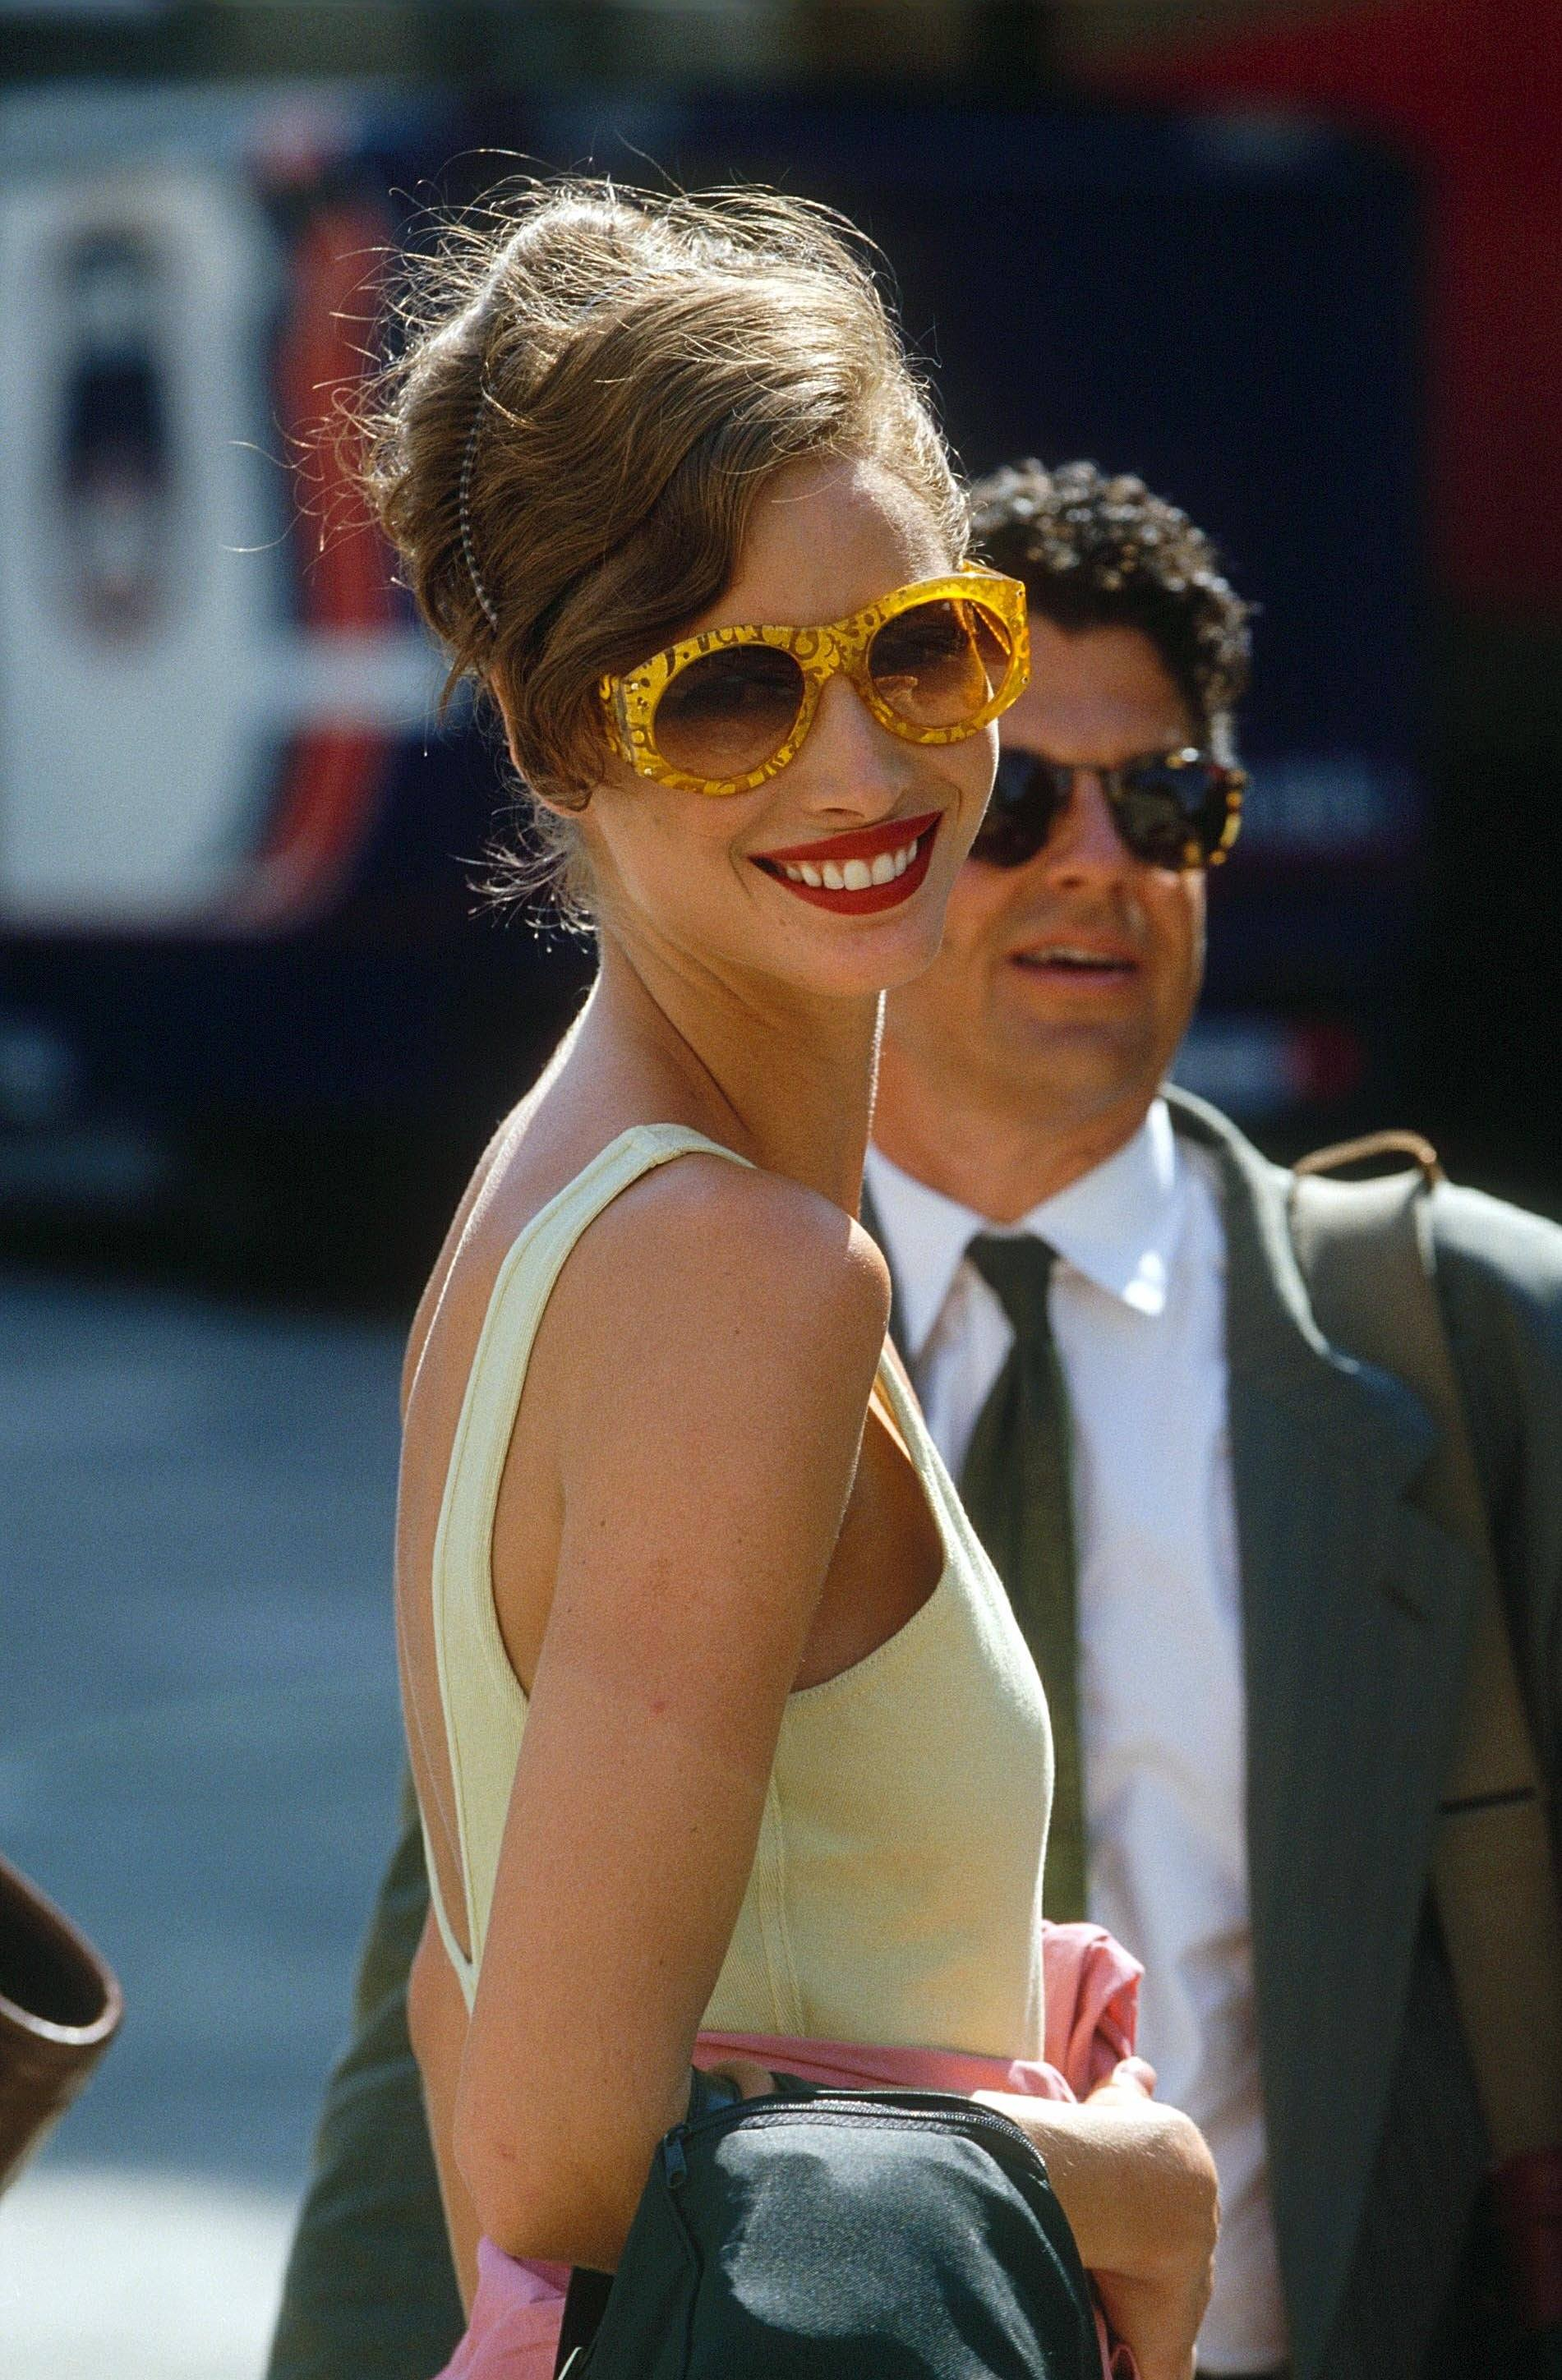 Christy Turlington with brown hair in side parted updo wearing yellow sunglasses and yellow dress.